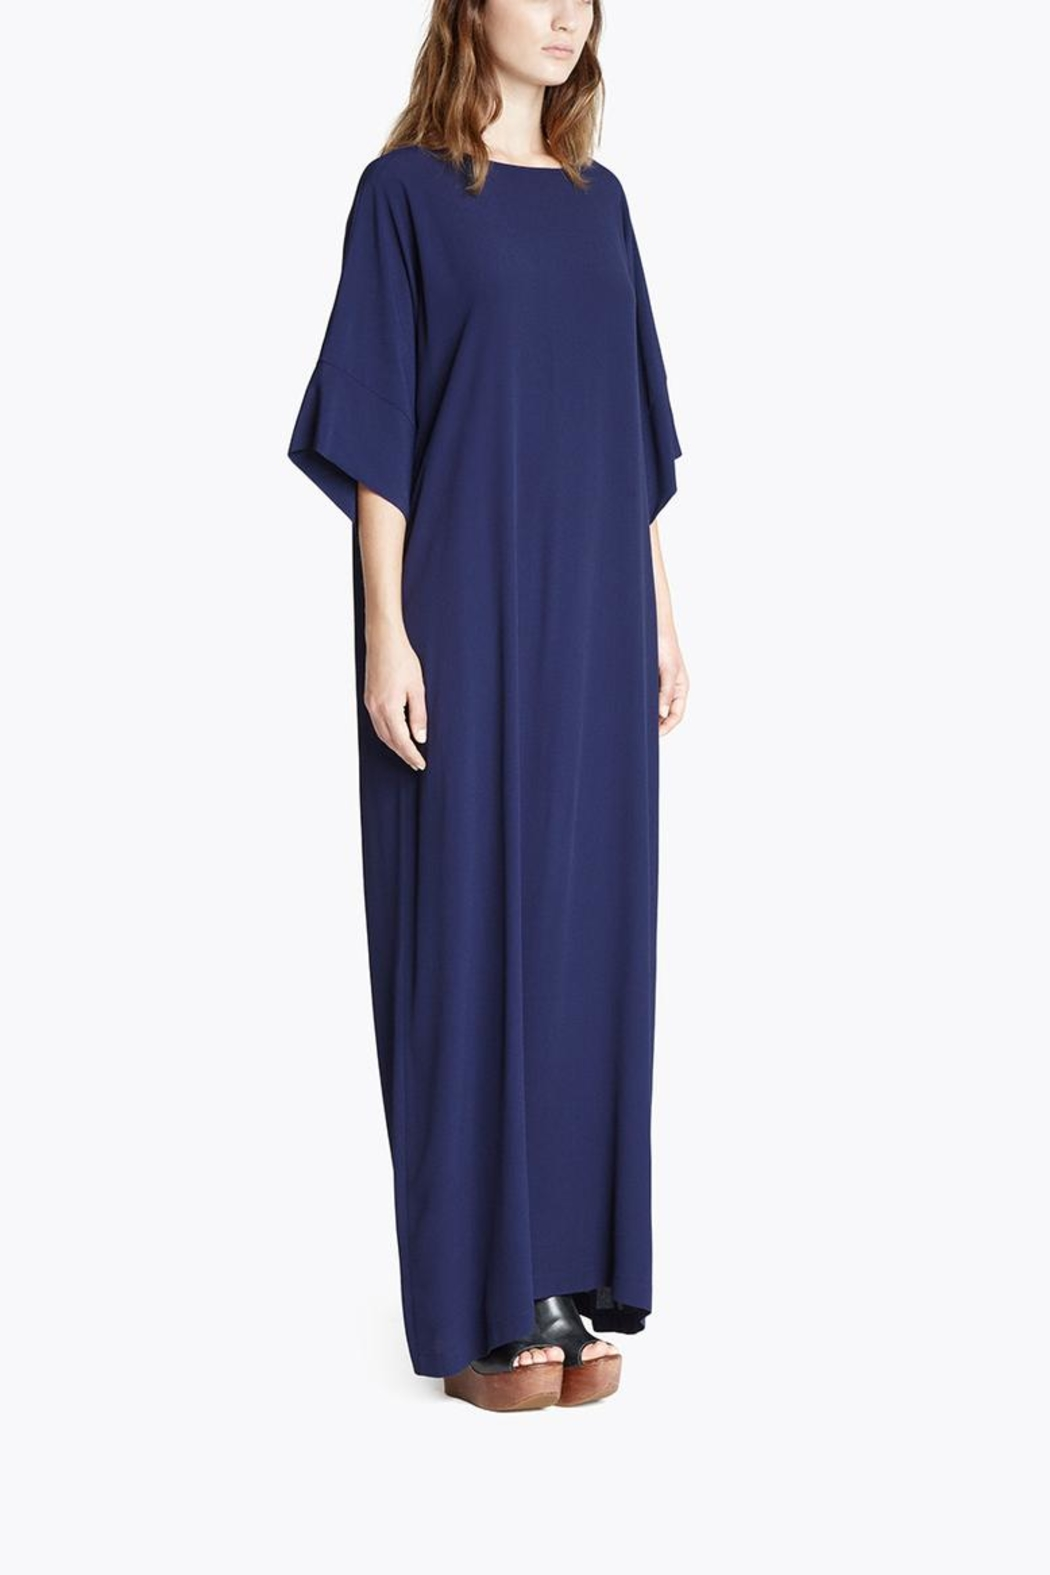 CYRILLE GASSILINE Blue Maxi Dress - Side Cropped Image